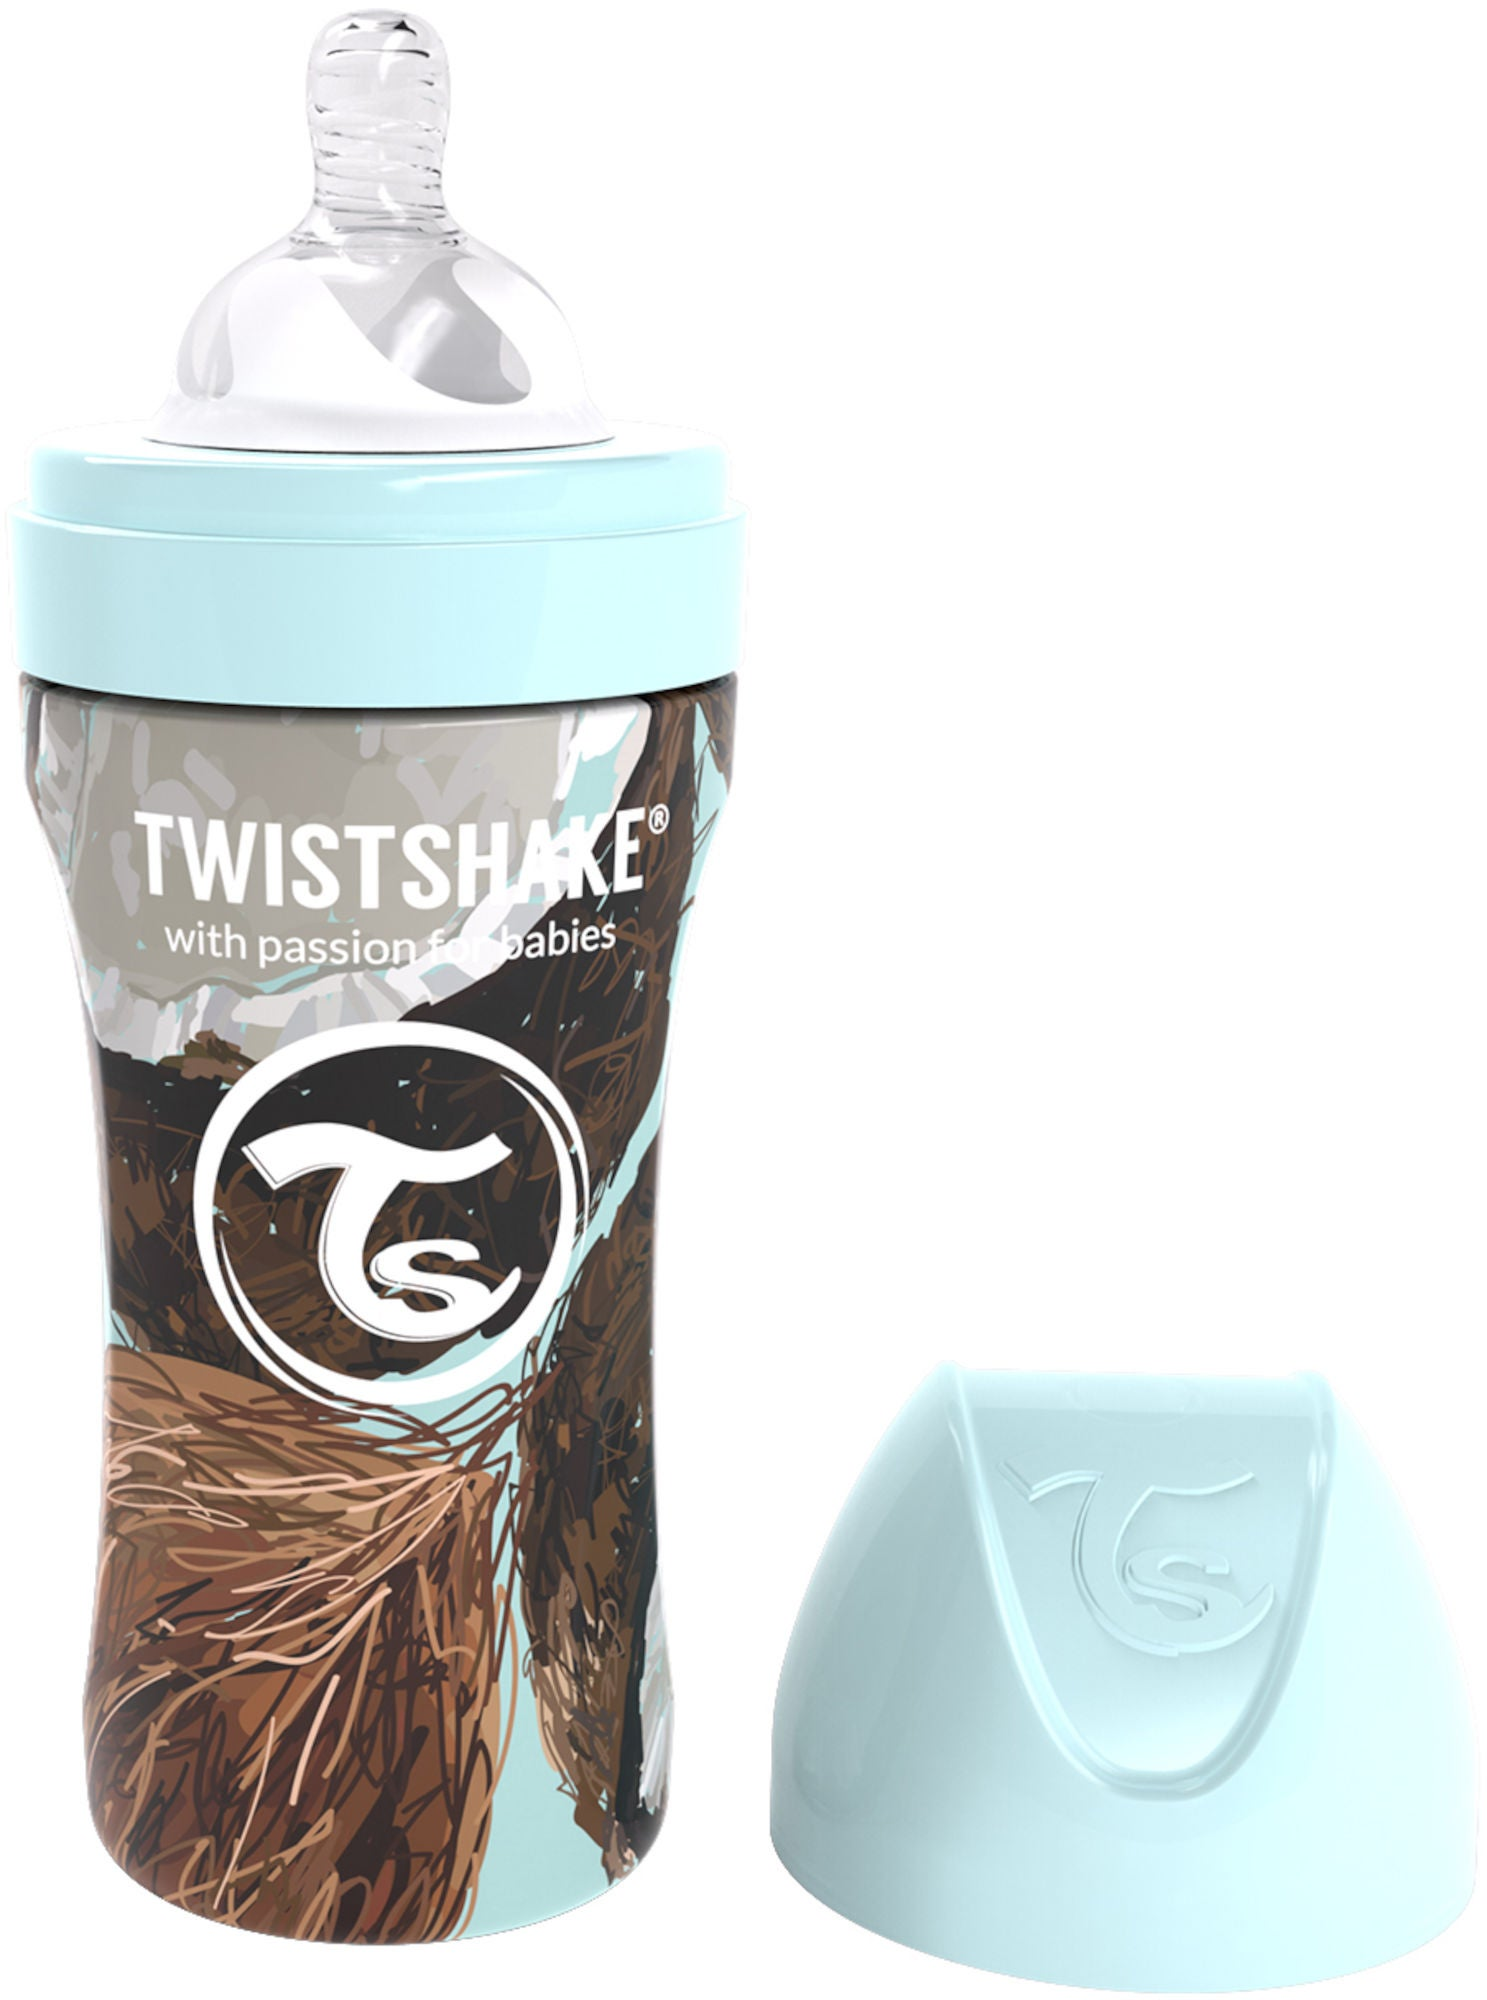 Twistshake Anti-Colic Stainless Steel Tuttipullo 330ml, Coconut